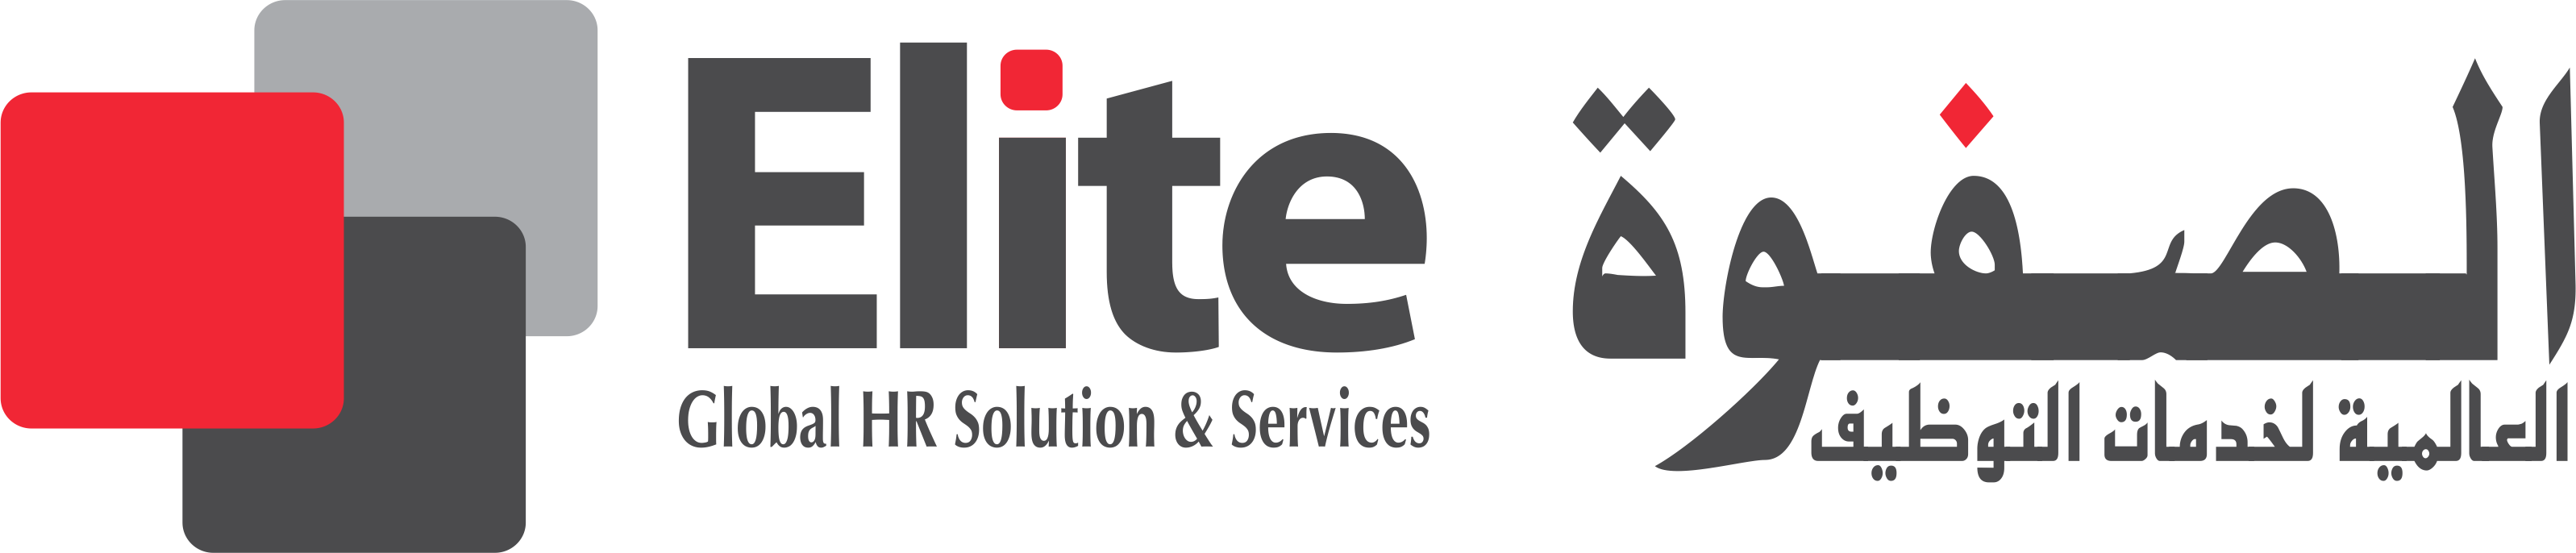 ELITE GLOBAL HR SOLUTION & SERVICES Logo